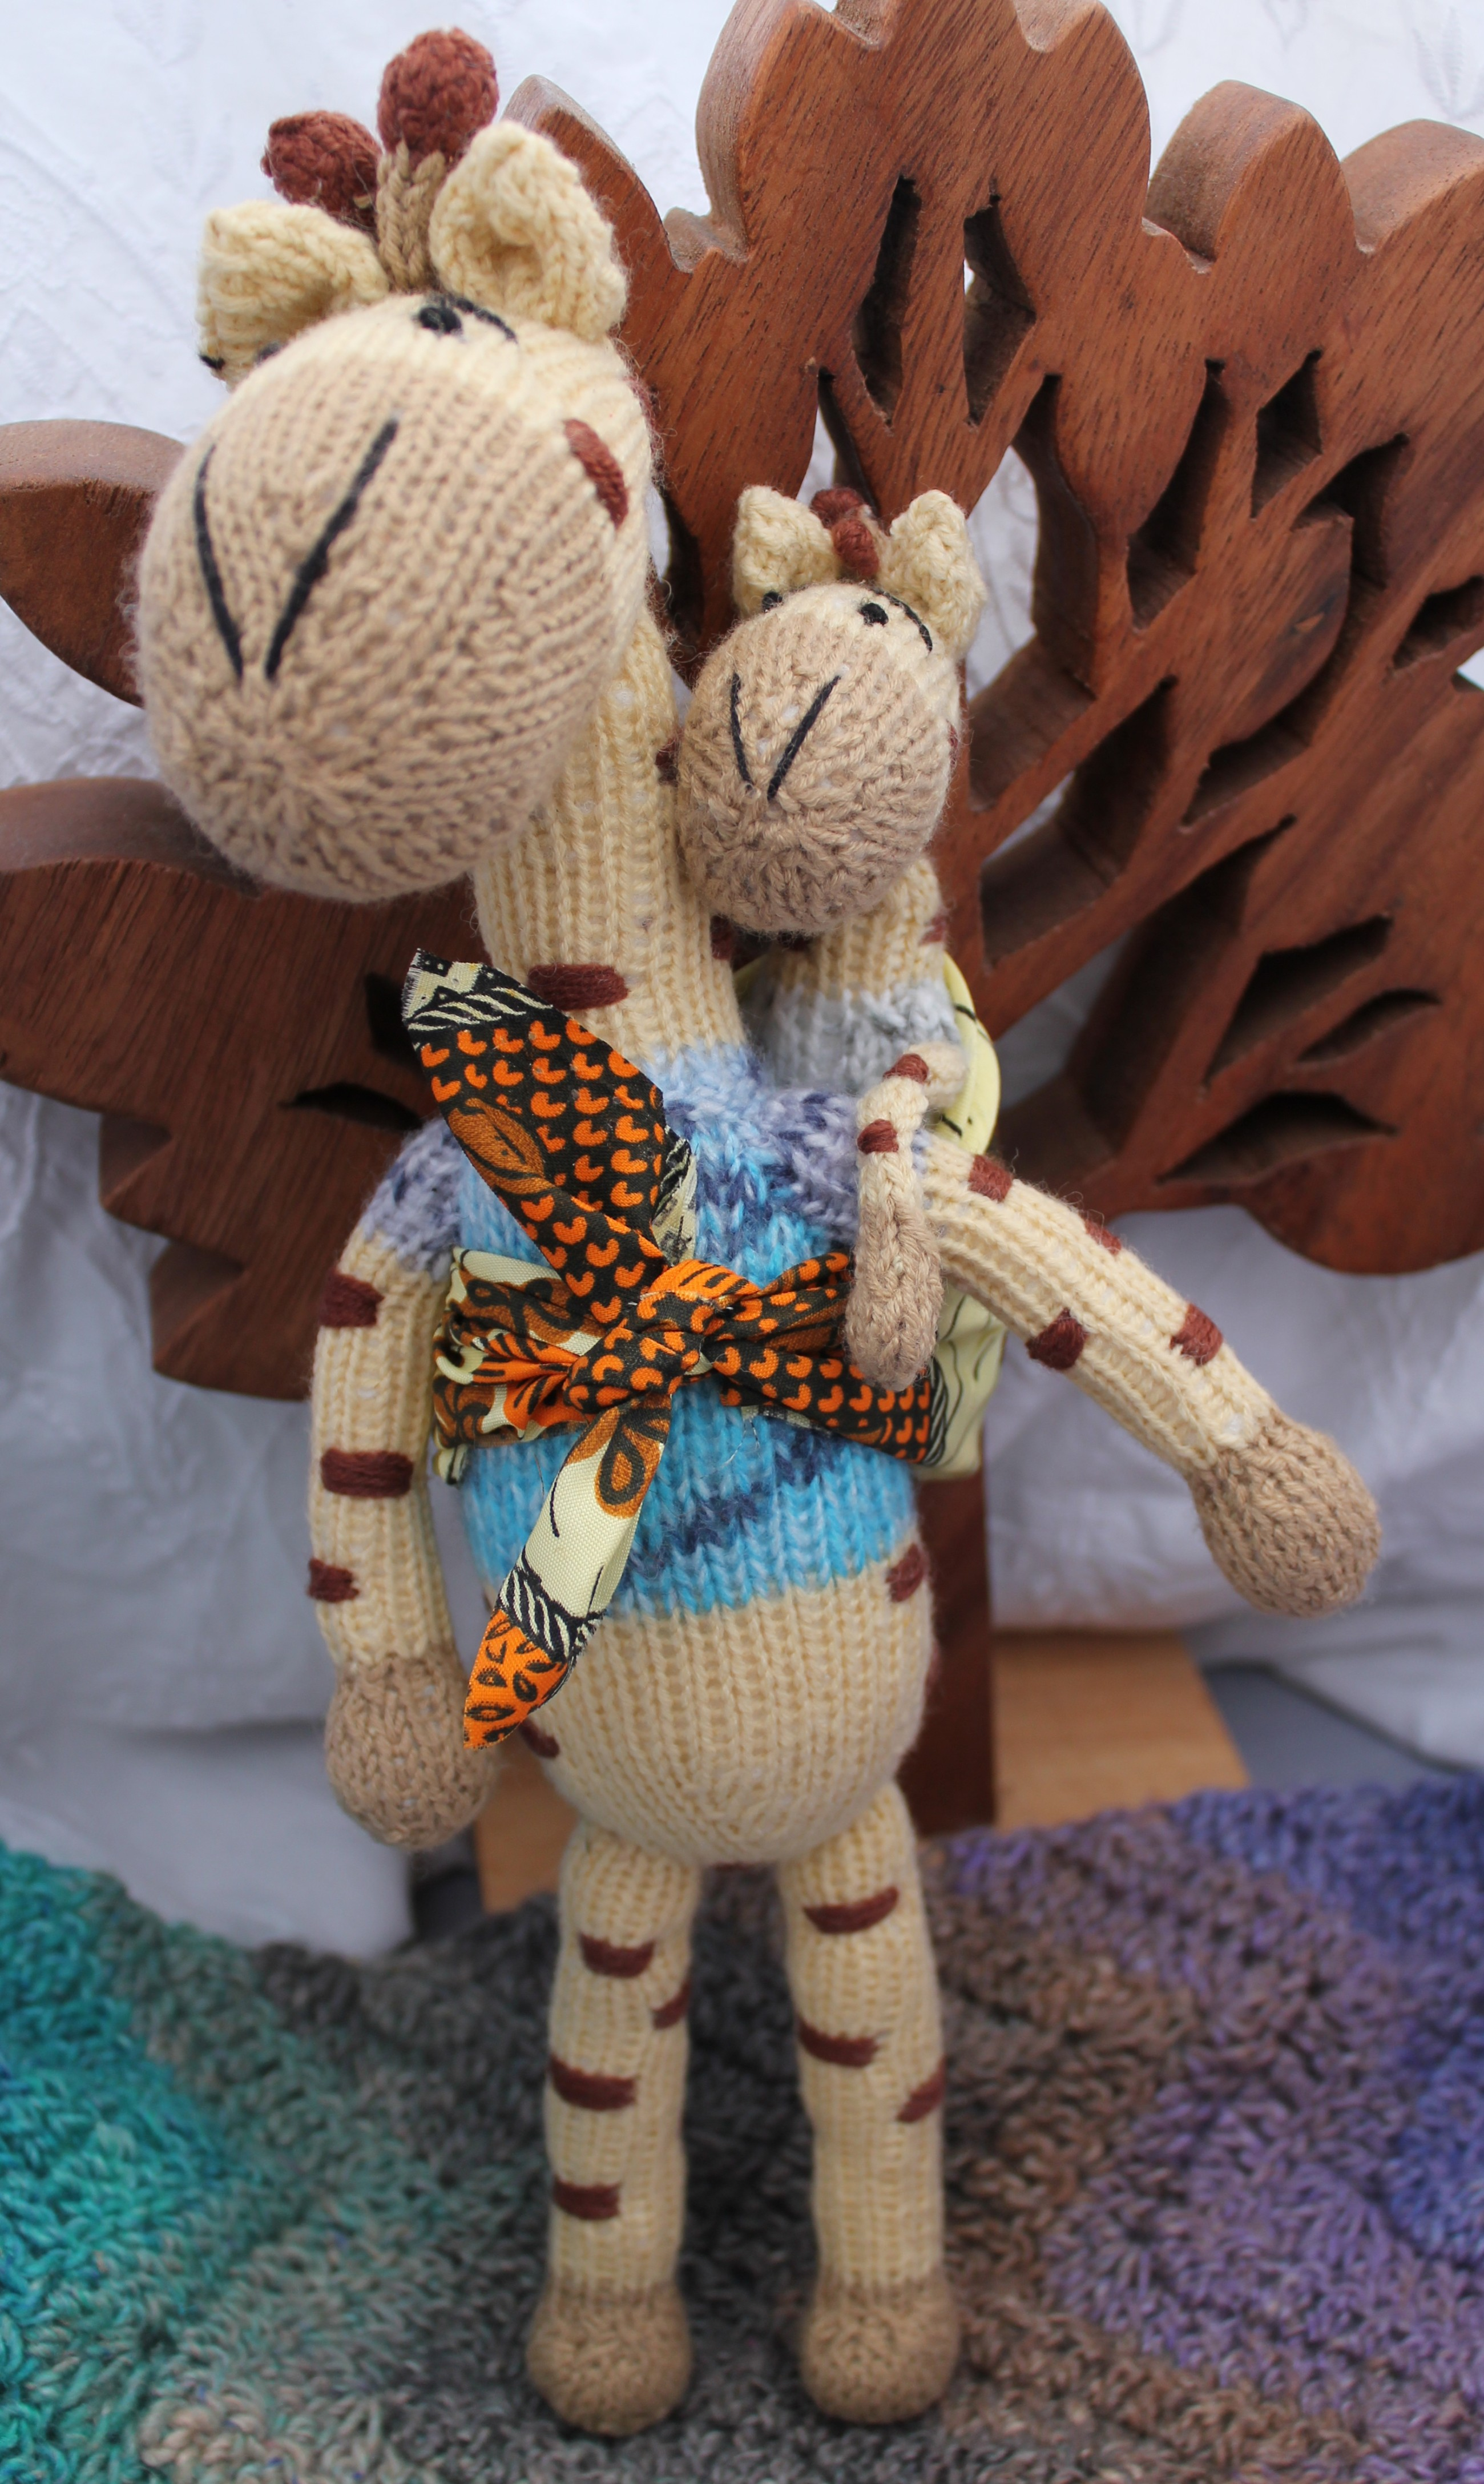 Handknitted Fair Trade Giraffe Mother and Baby